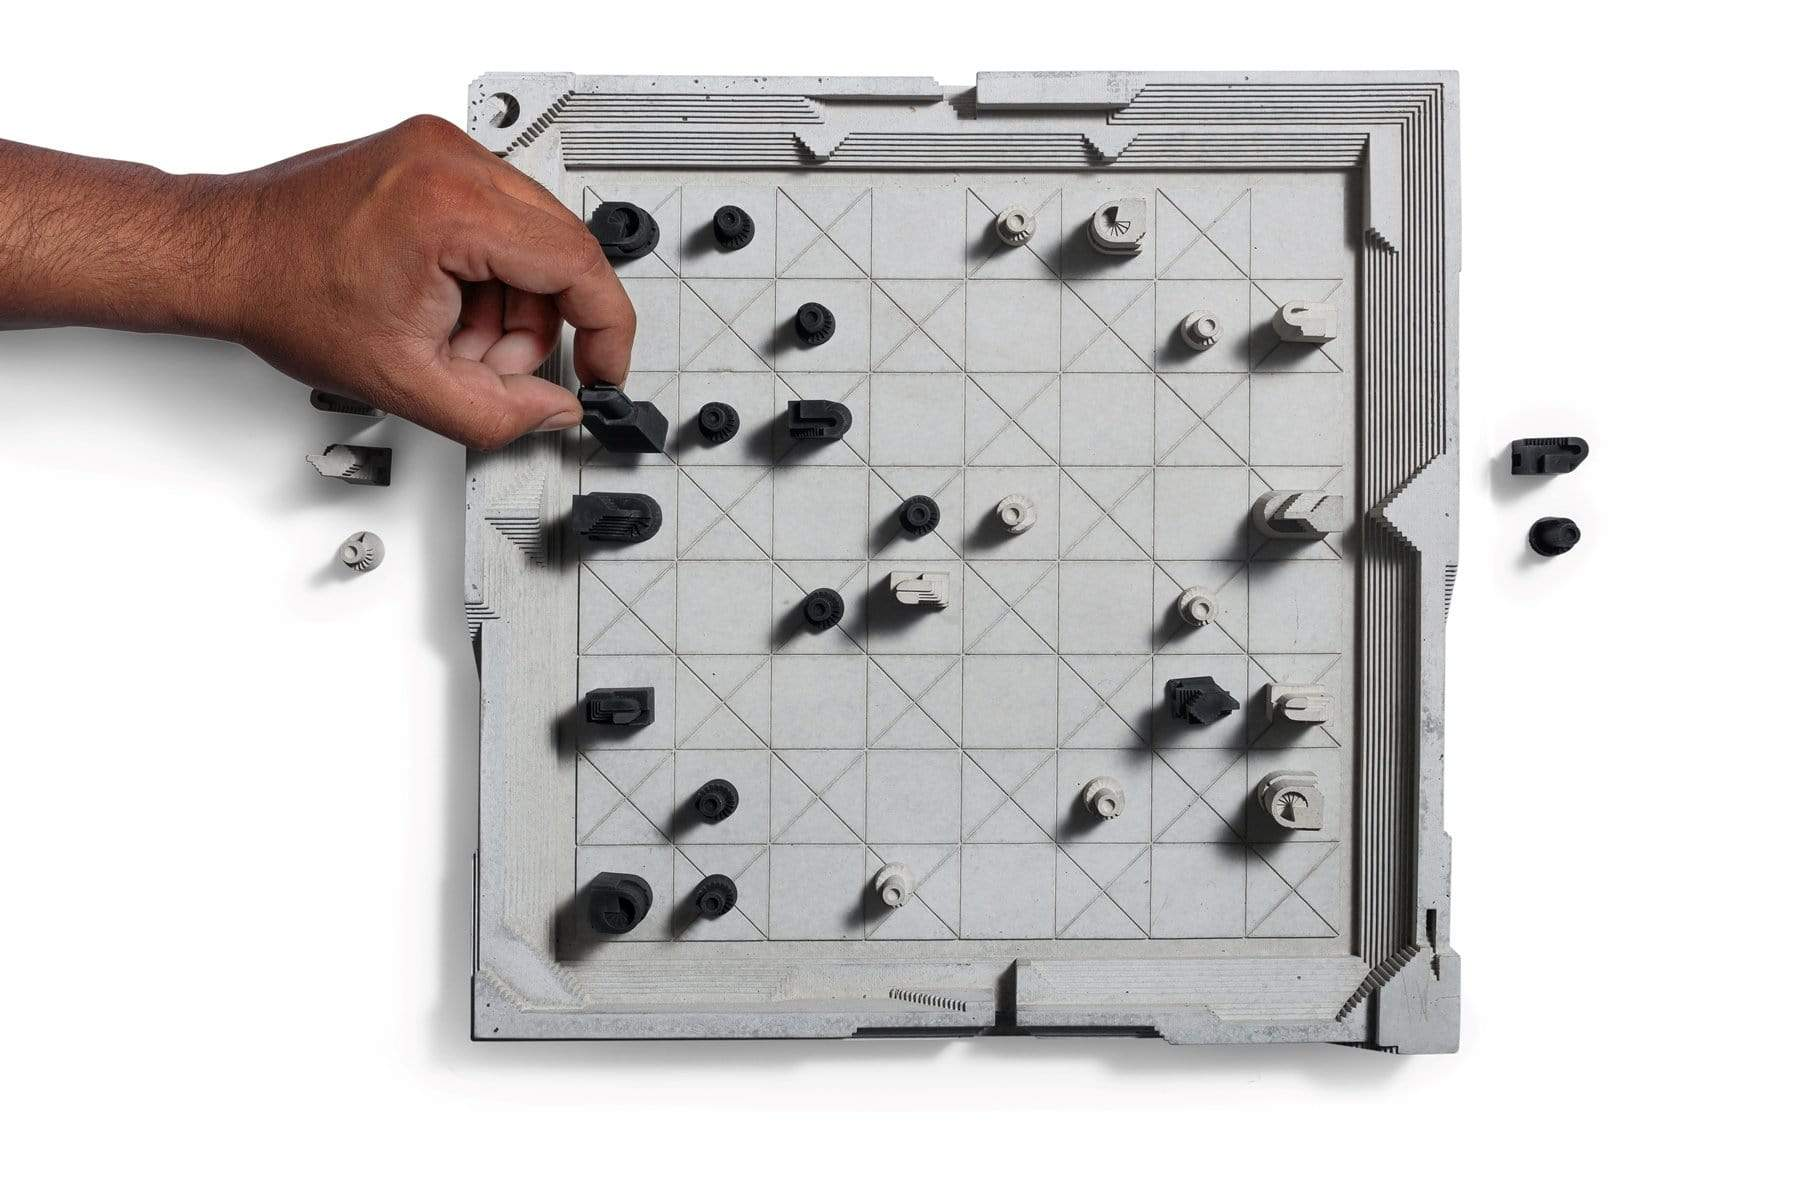 Arena - The Game of Chess